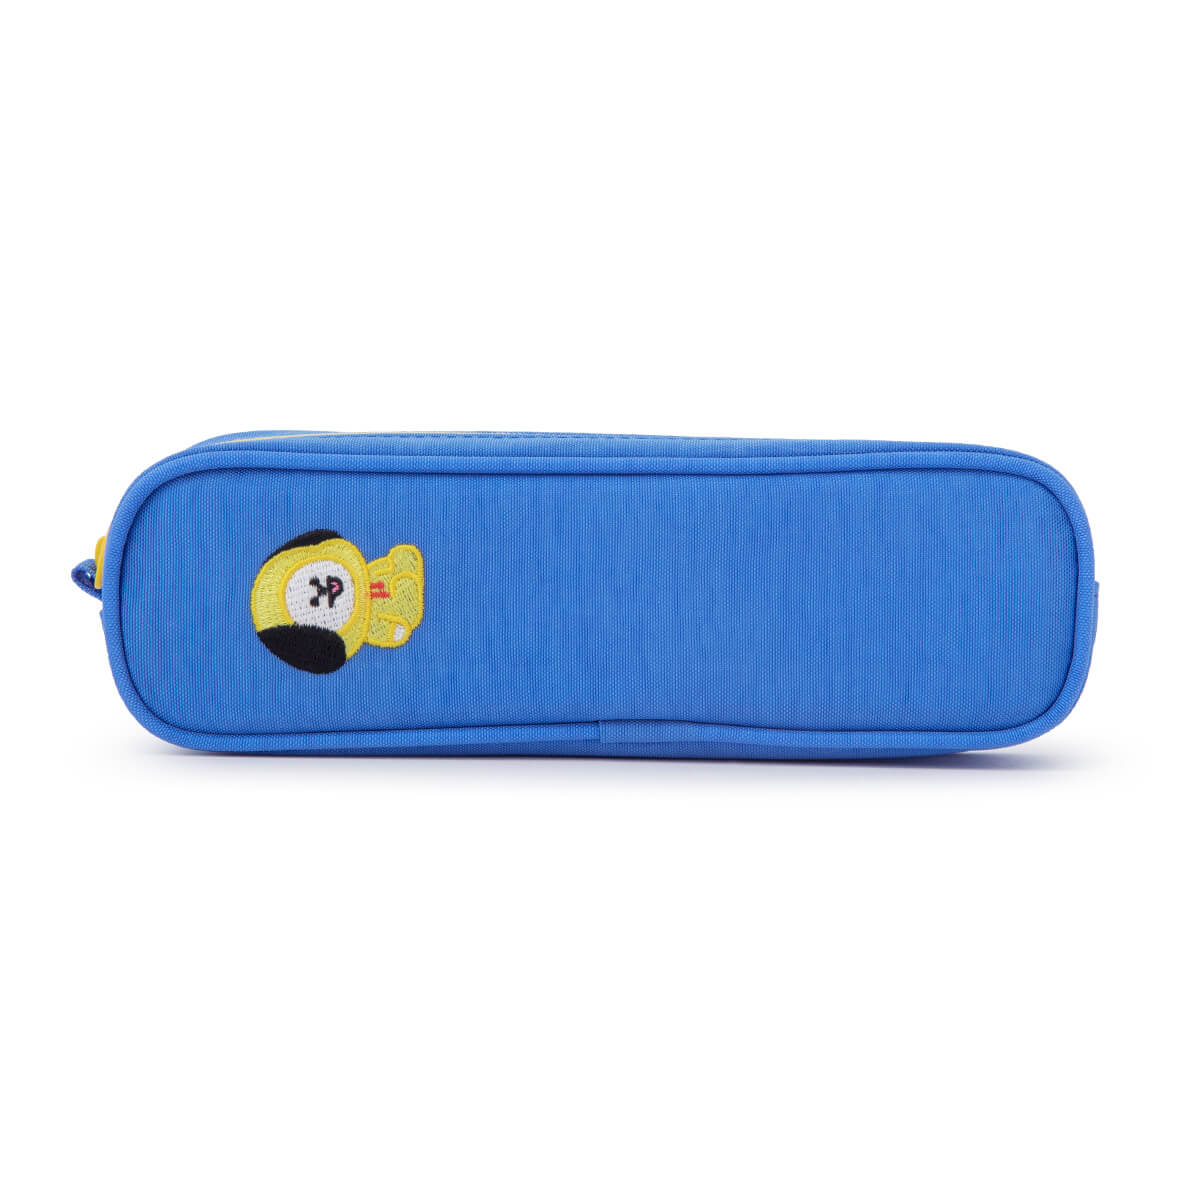 BT21 CHIMMY Stitch Pencil Case